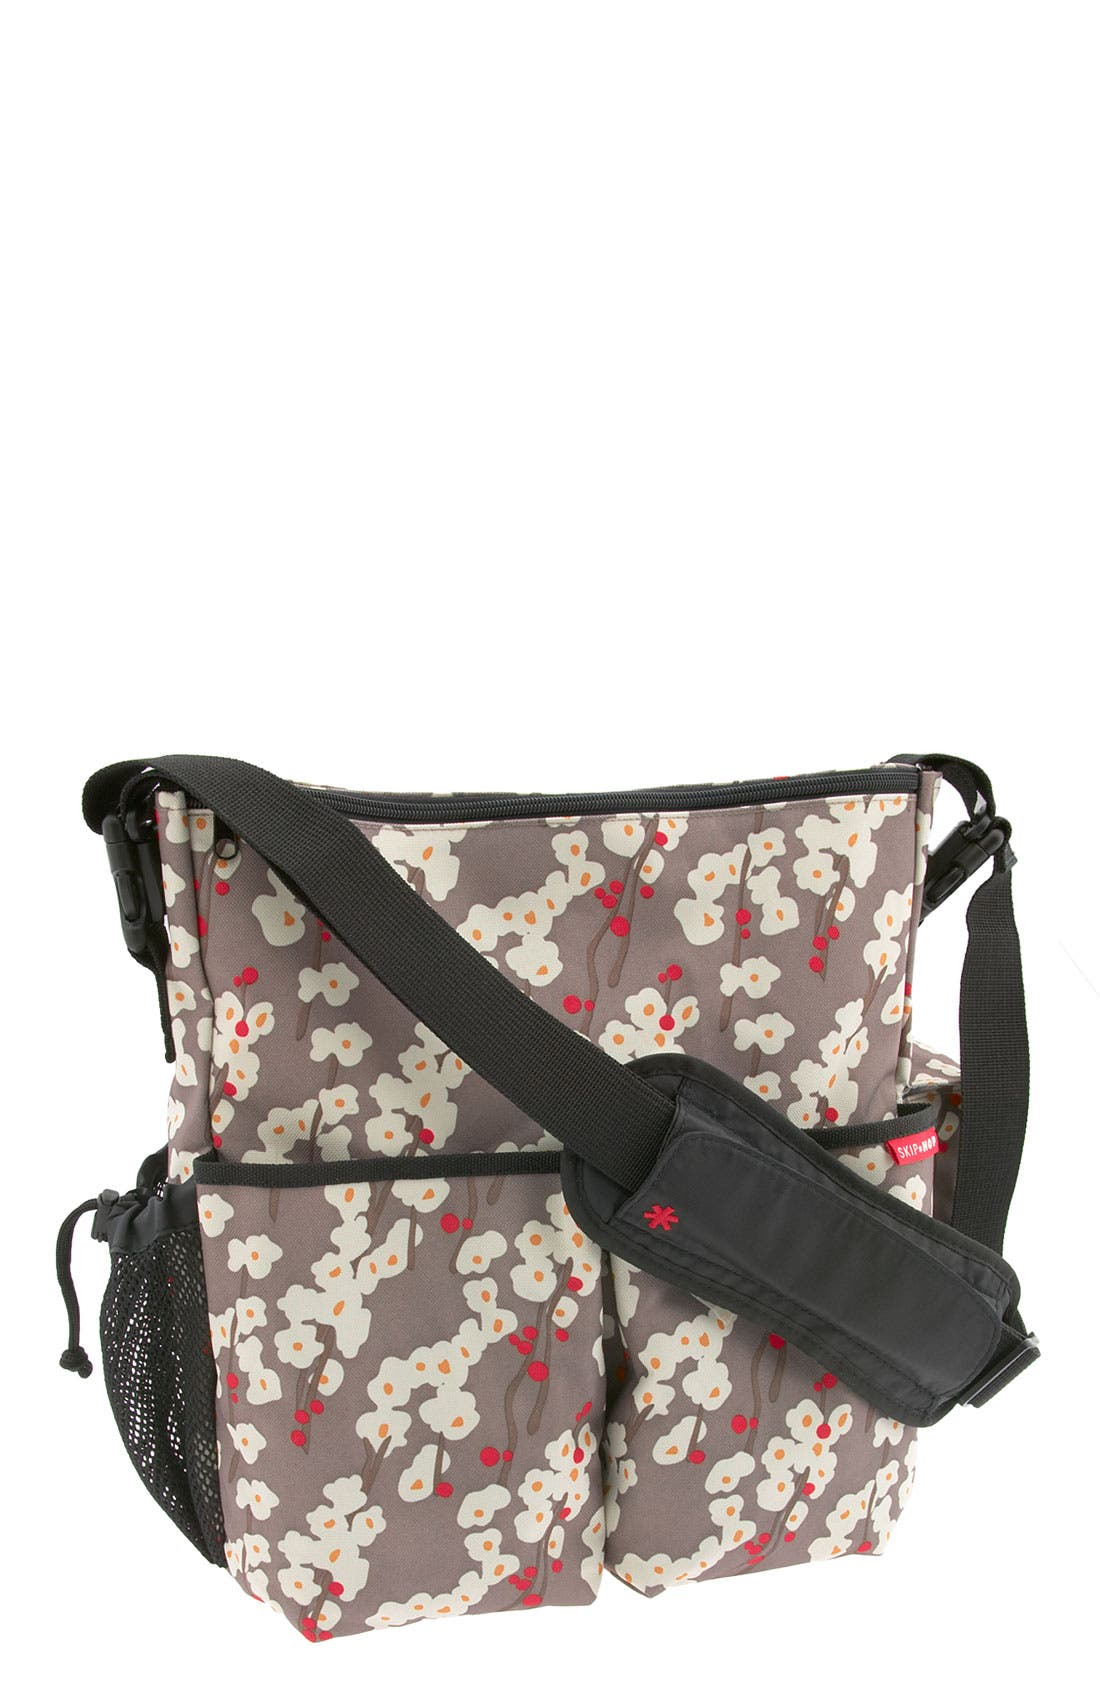 Alternate Image 1 Selected - Skip Hop 'Duo' Diaper Bag (Deluxe Edition)